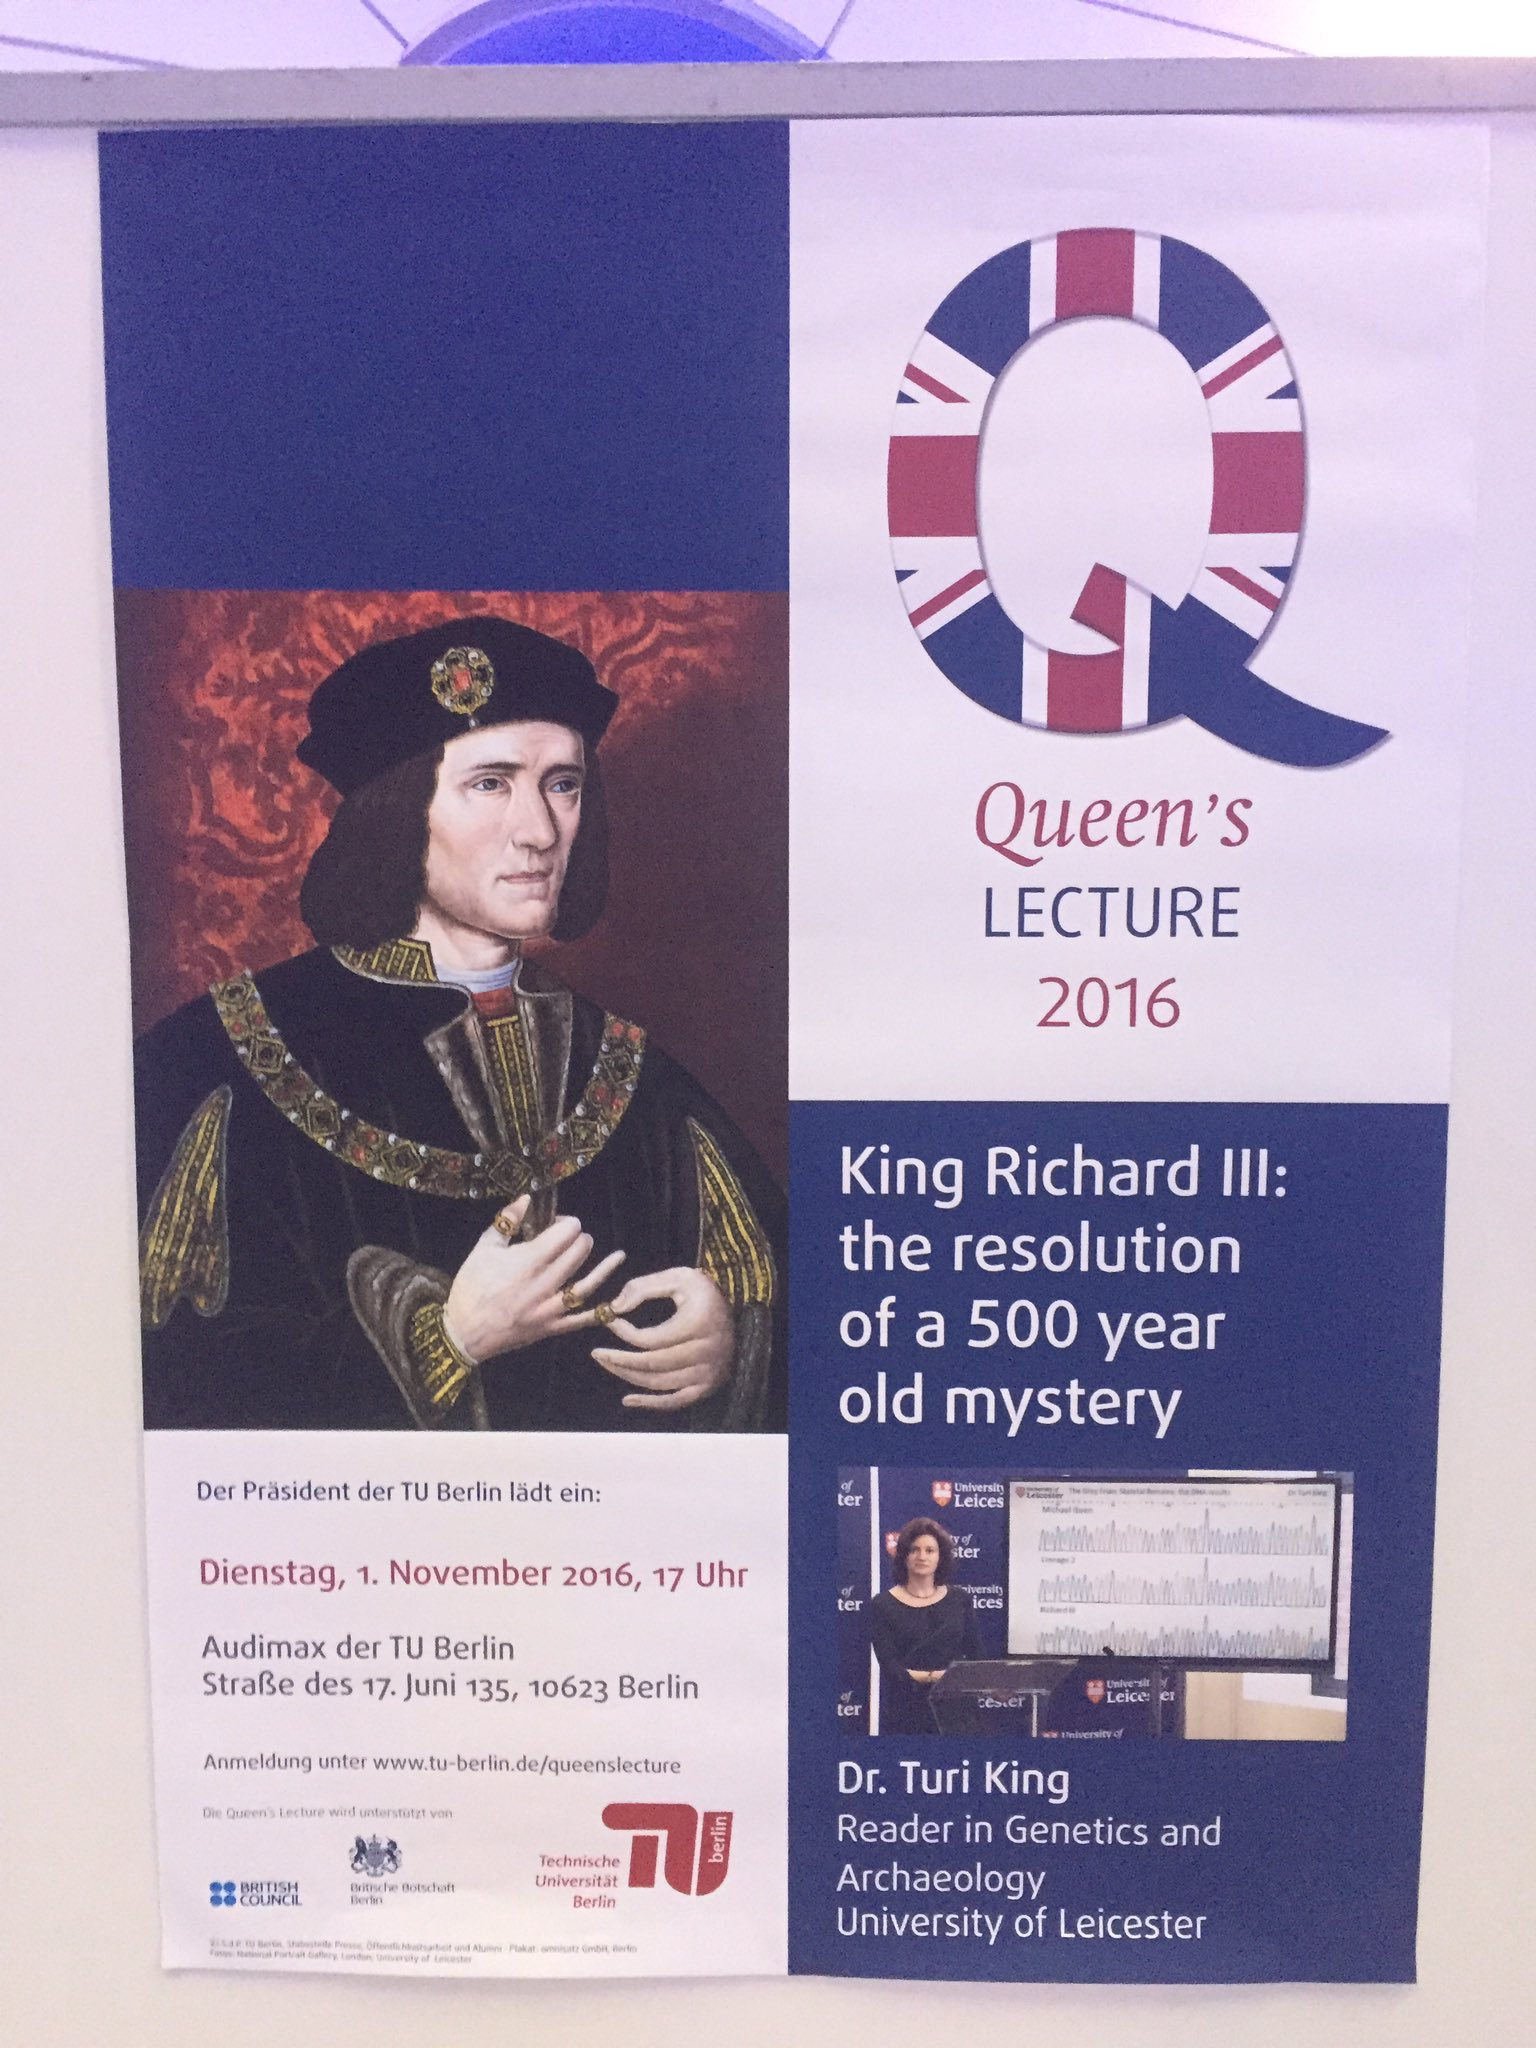 20 minutes to go for #QueensLecture @uniofleicester @richard_third @deBritish @SebWoodFCO https://t.co/Lcd35VOGP6